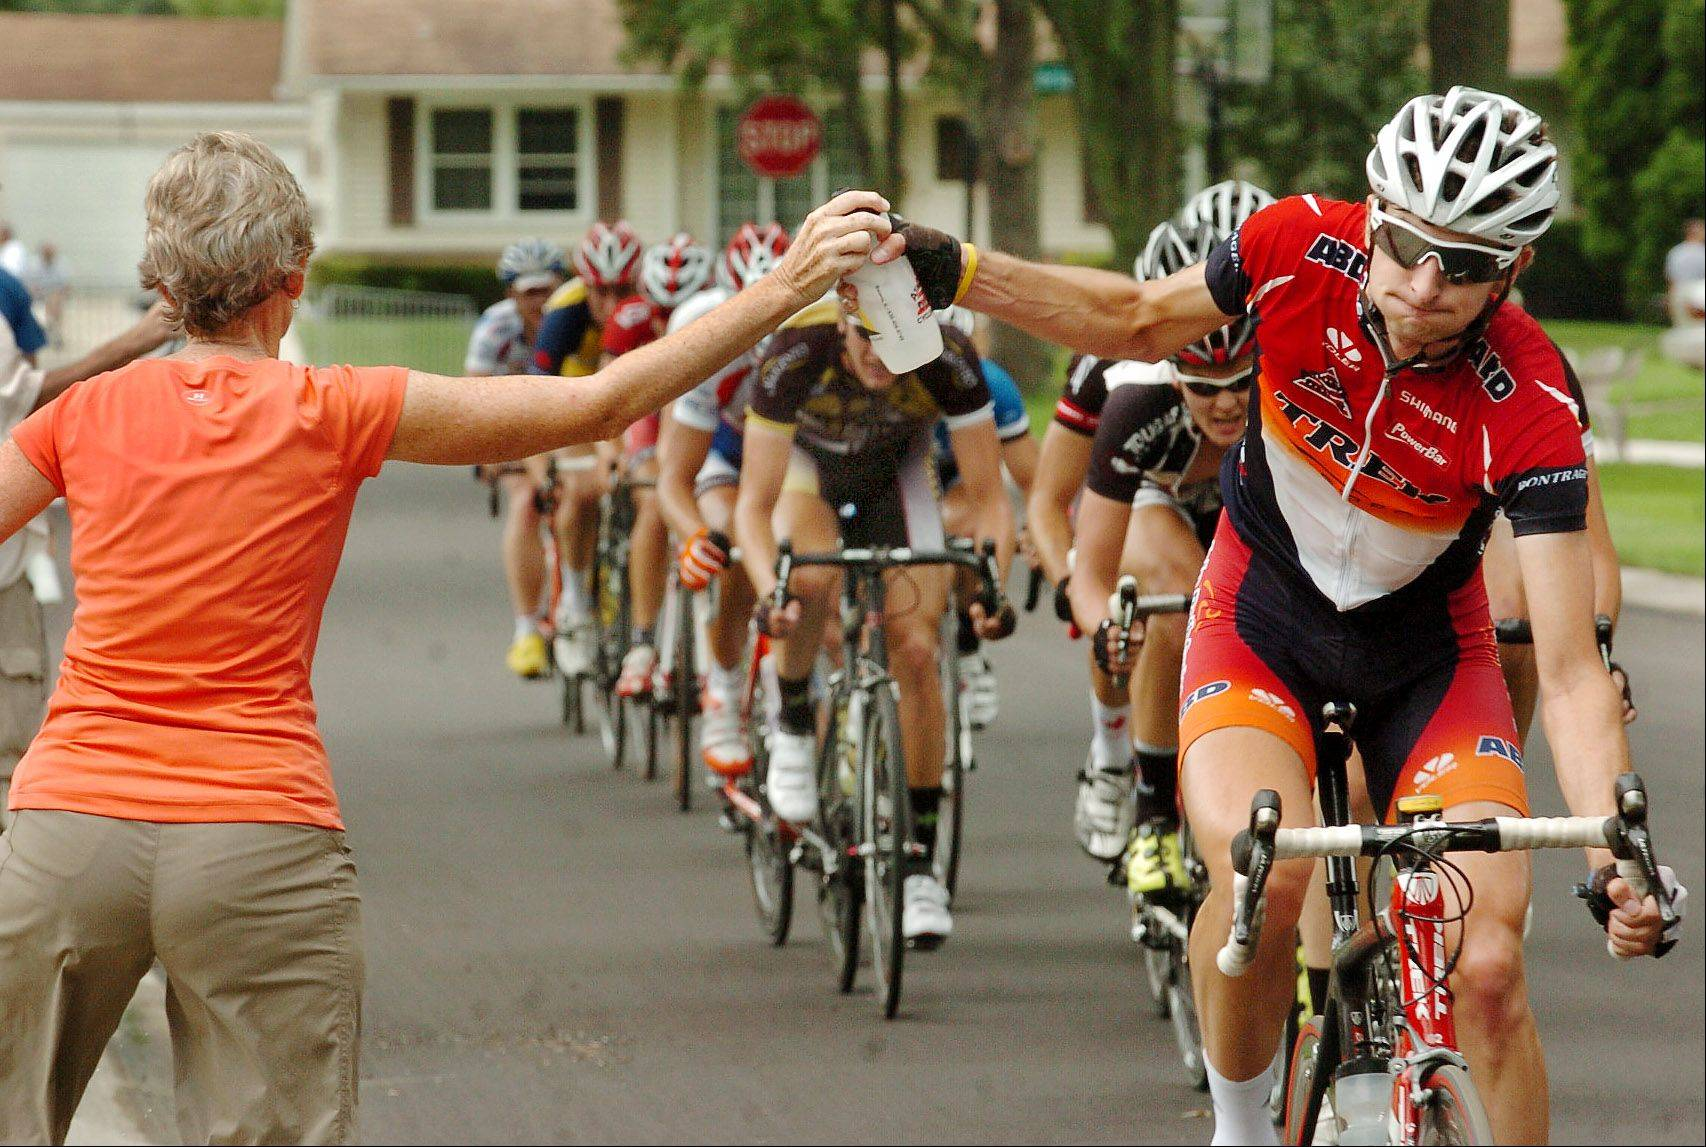 Tour of Elk Grove bike race kicks off Friday